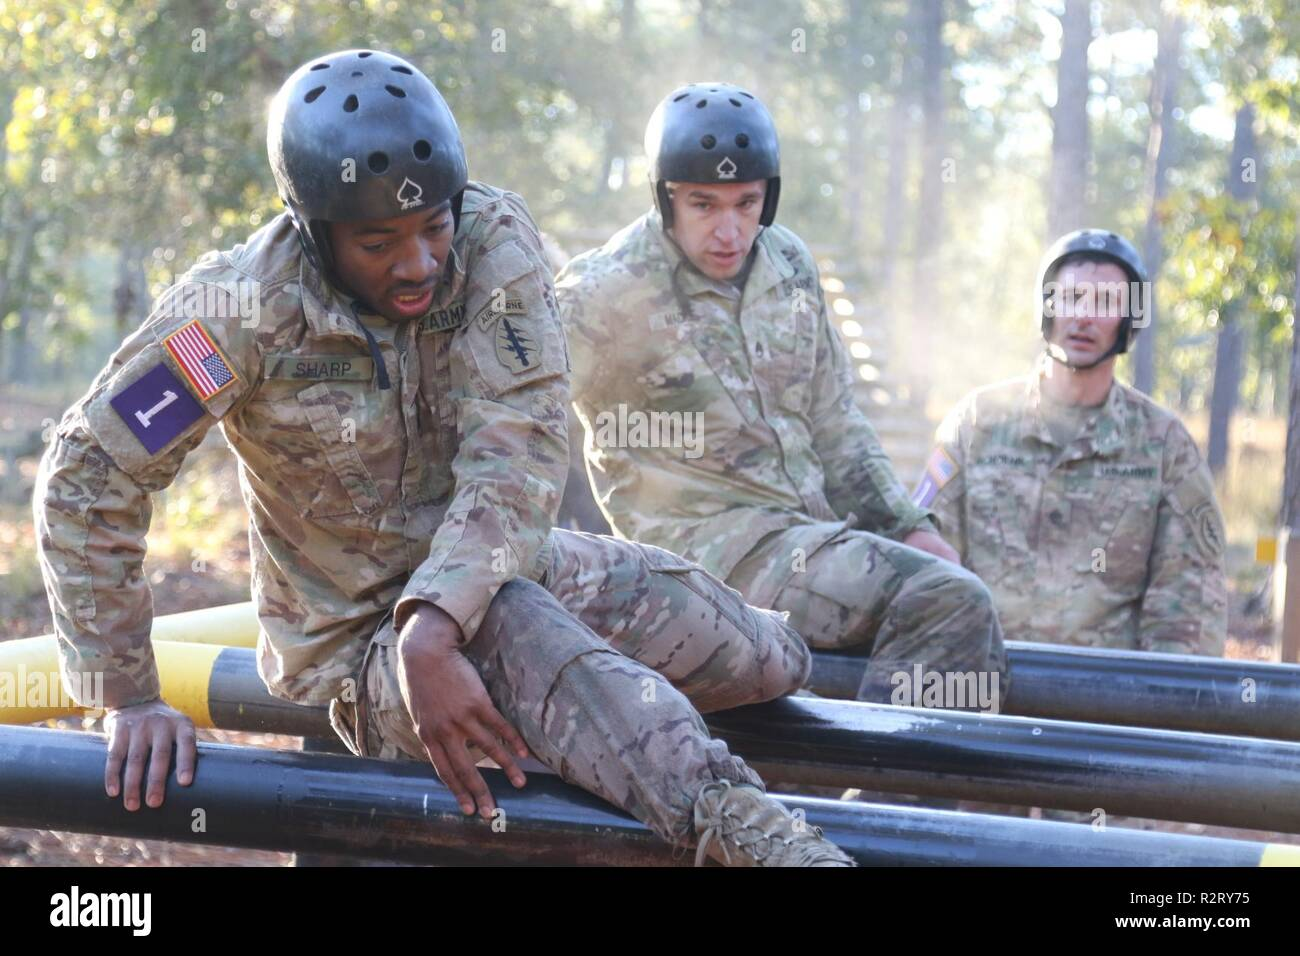 """U.S. Army civil affairs Soldiers assigned to 95th Civil Affairs Brigade (Special Operations) (Airborne), climb over a """"Nasty Nick"""" obstacle during day one of the Best Civil Affairs Team Competition, Oct. 30, 2018, at Camp Mackall, N.C.  Twelve teams from 95th CA Bde. (SO) (A) and U.S. Army John F. Kennedy Special Warfare Center and School, competed in physically and mentally challenging events designed to build camaraderie and esprit de corps among Soldiers.  Teams competed in either the Civil Affairs Team or Enhancement MOS Team category. The events included the """"Nasty Nick"""" Obstacle Course,  Stock Photo"""